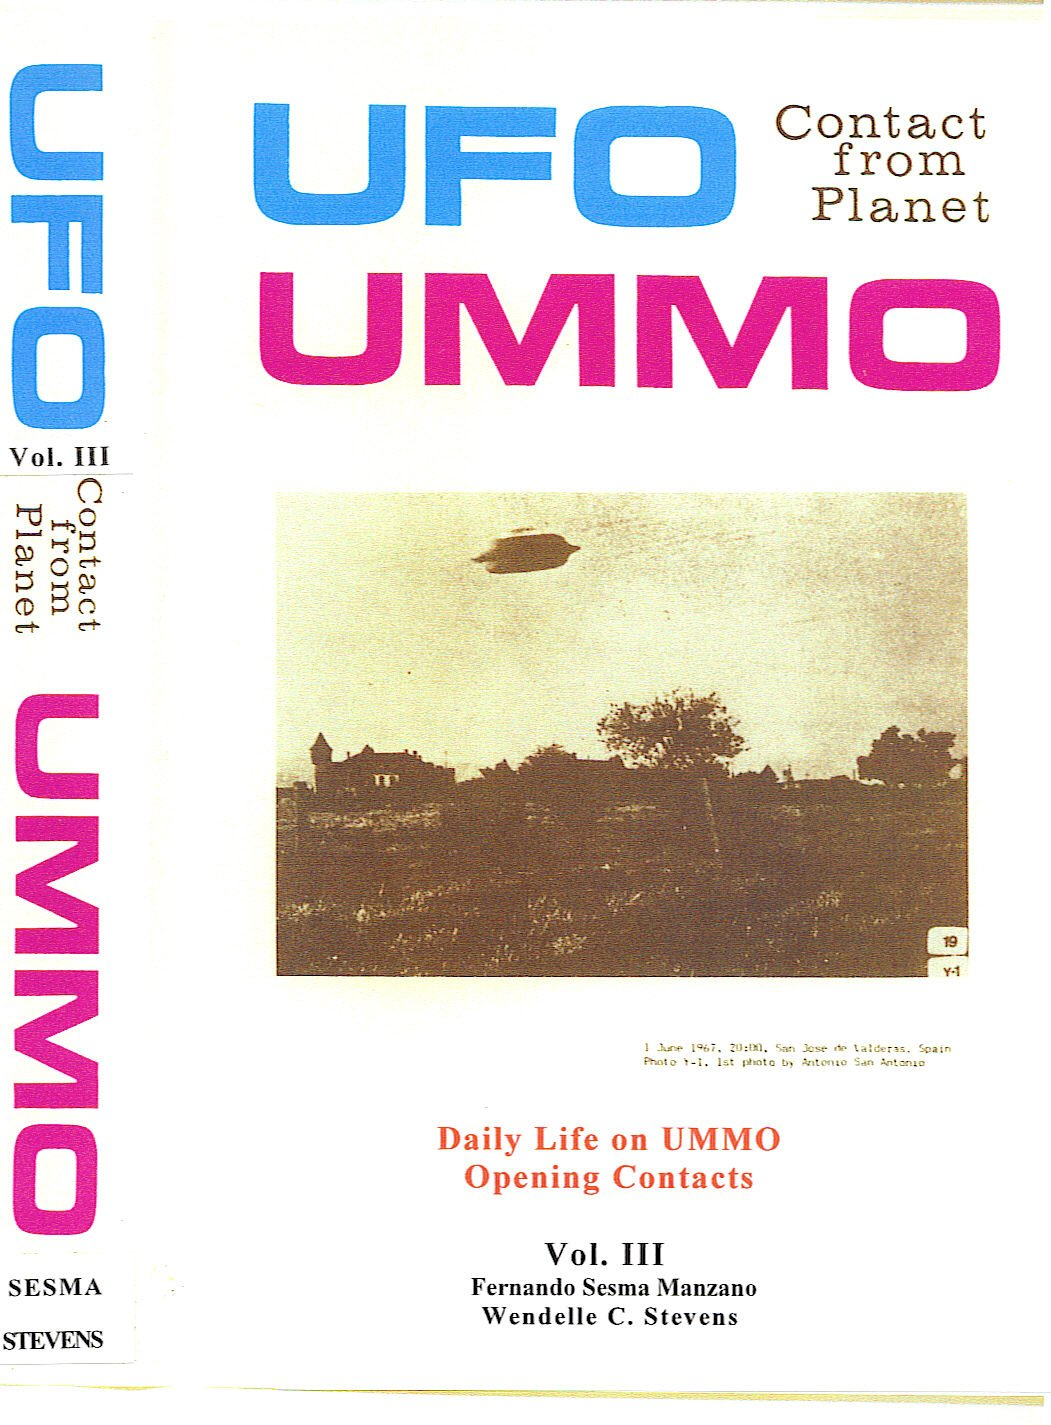 UFO CONTACT FROM PLANET UMMO Vol 1 eBook: Wendelle Stevens